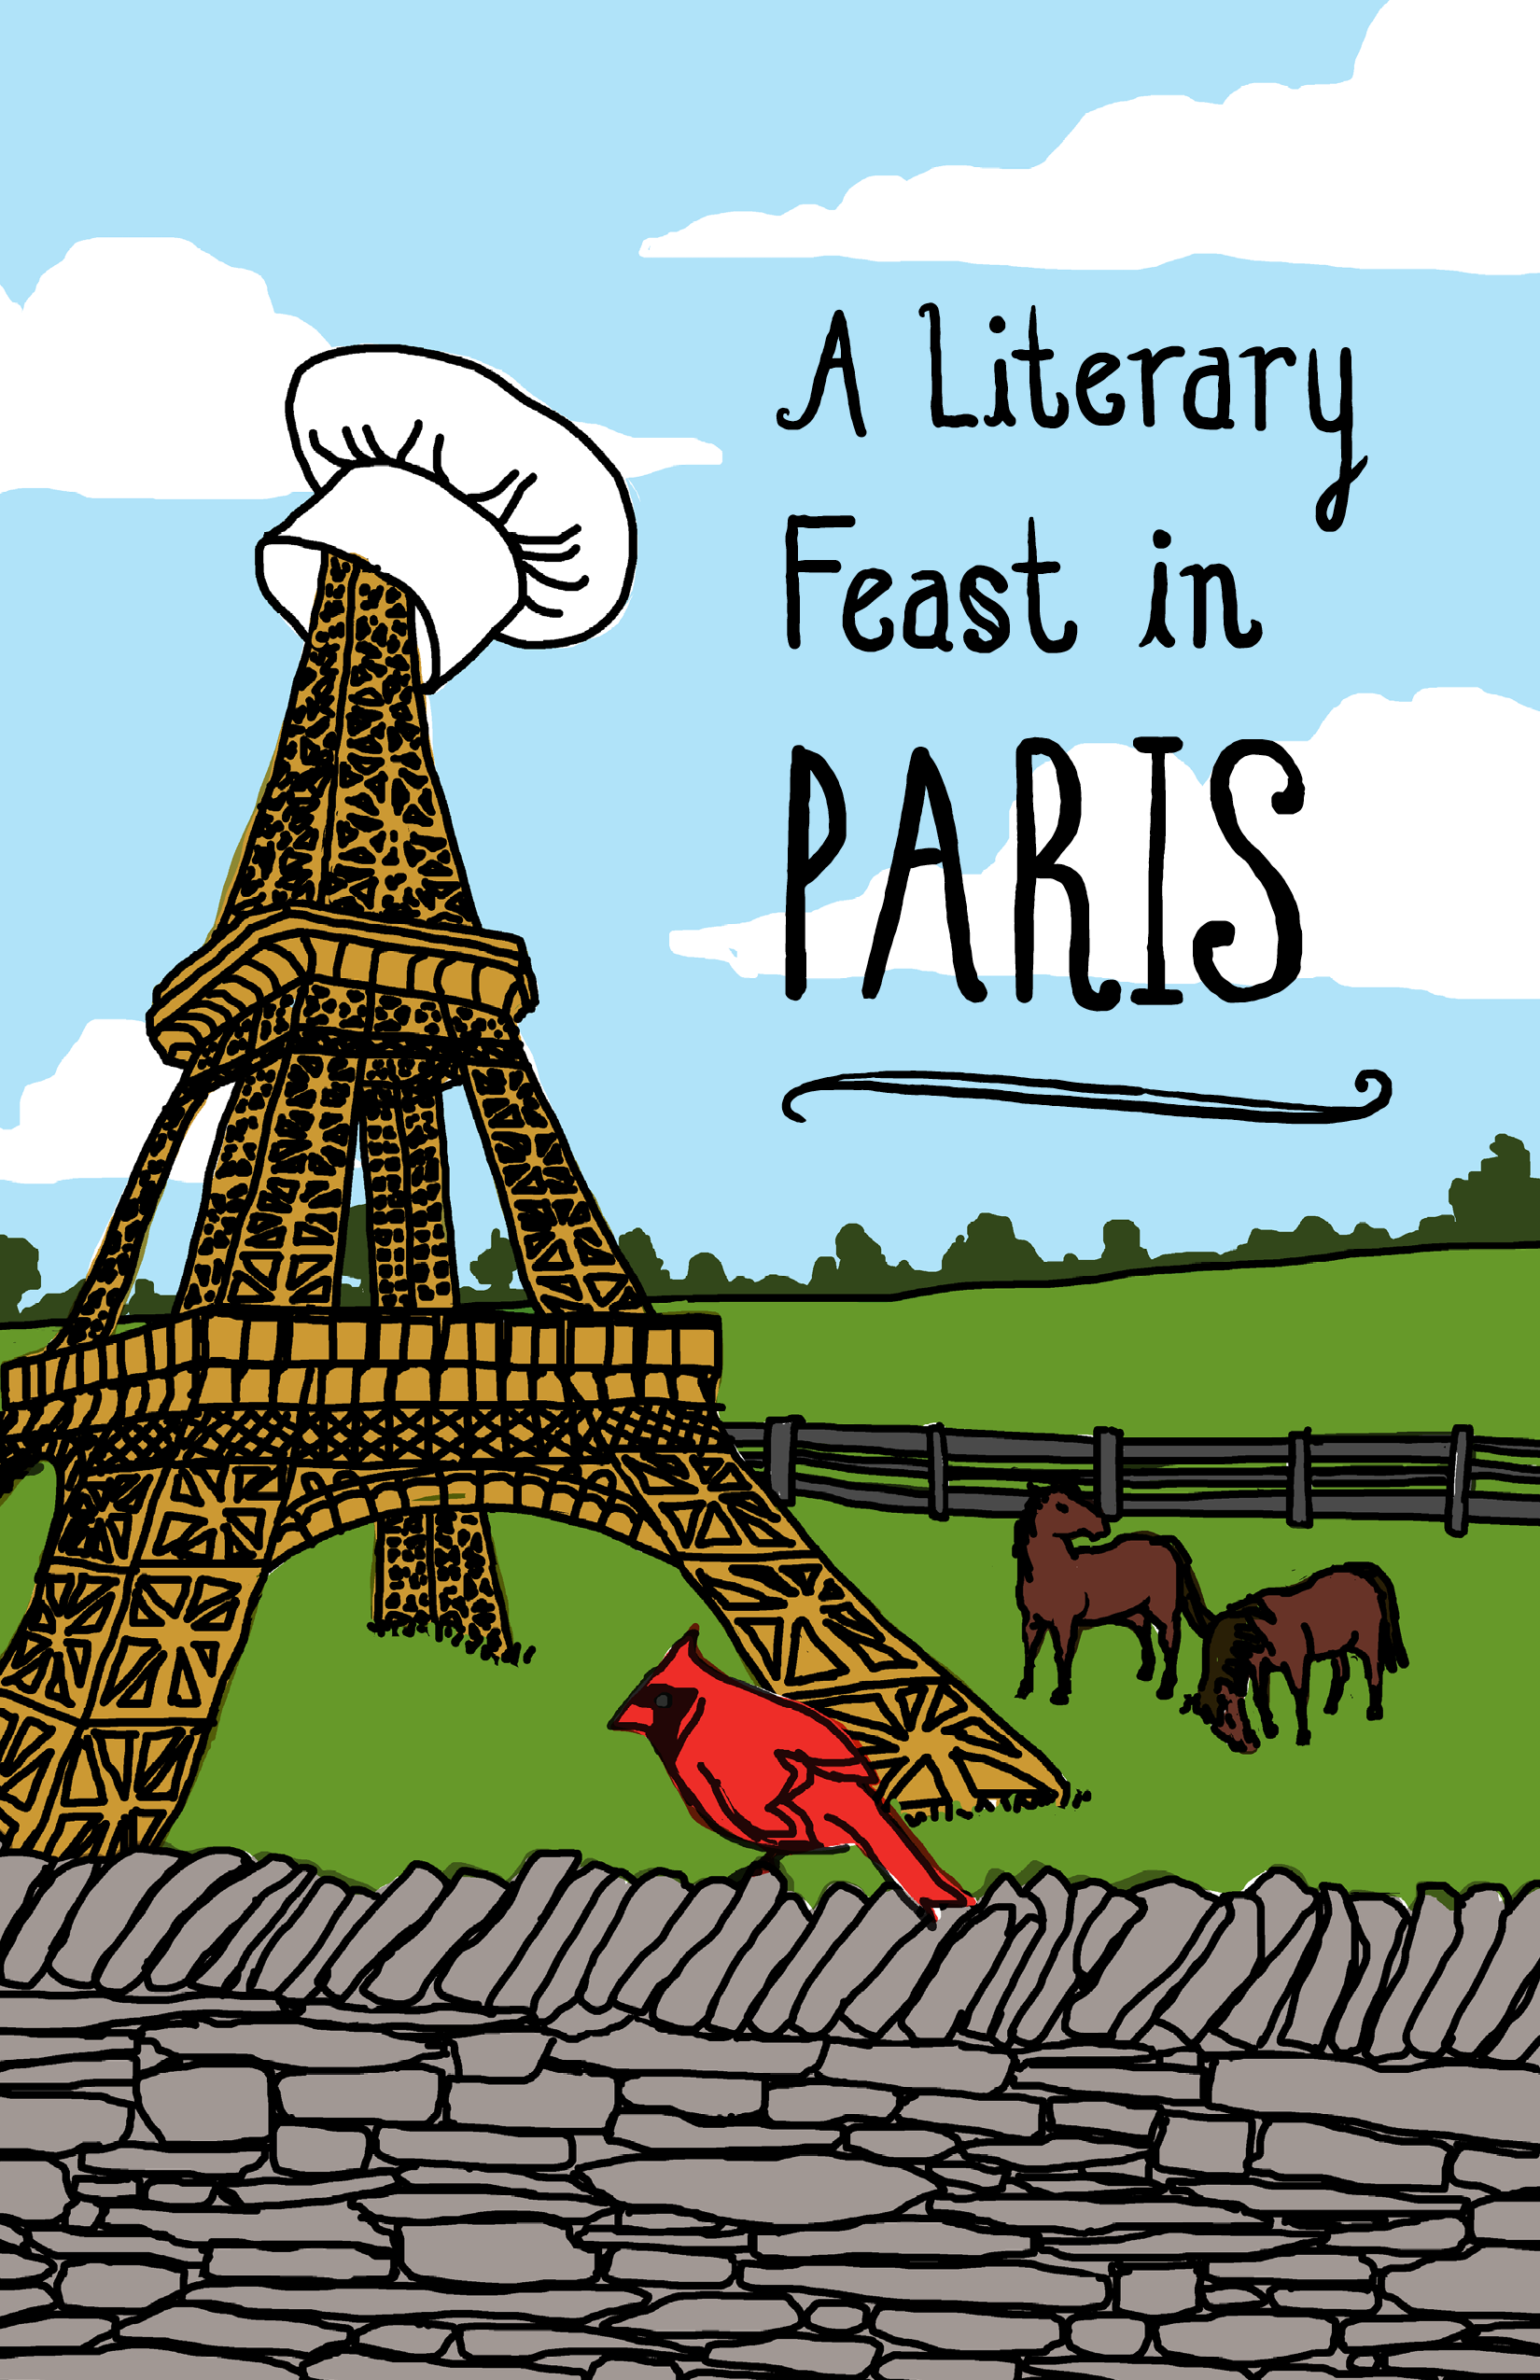 A Literary Feast in Paris cookbook front cover. Depicts a Kentucky horsefarm with an Eiffel tower in the field with chef hat on the peak.